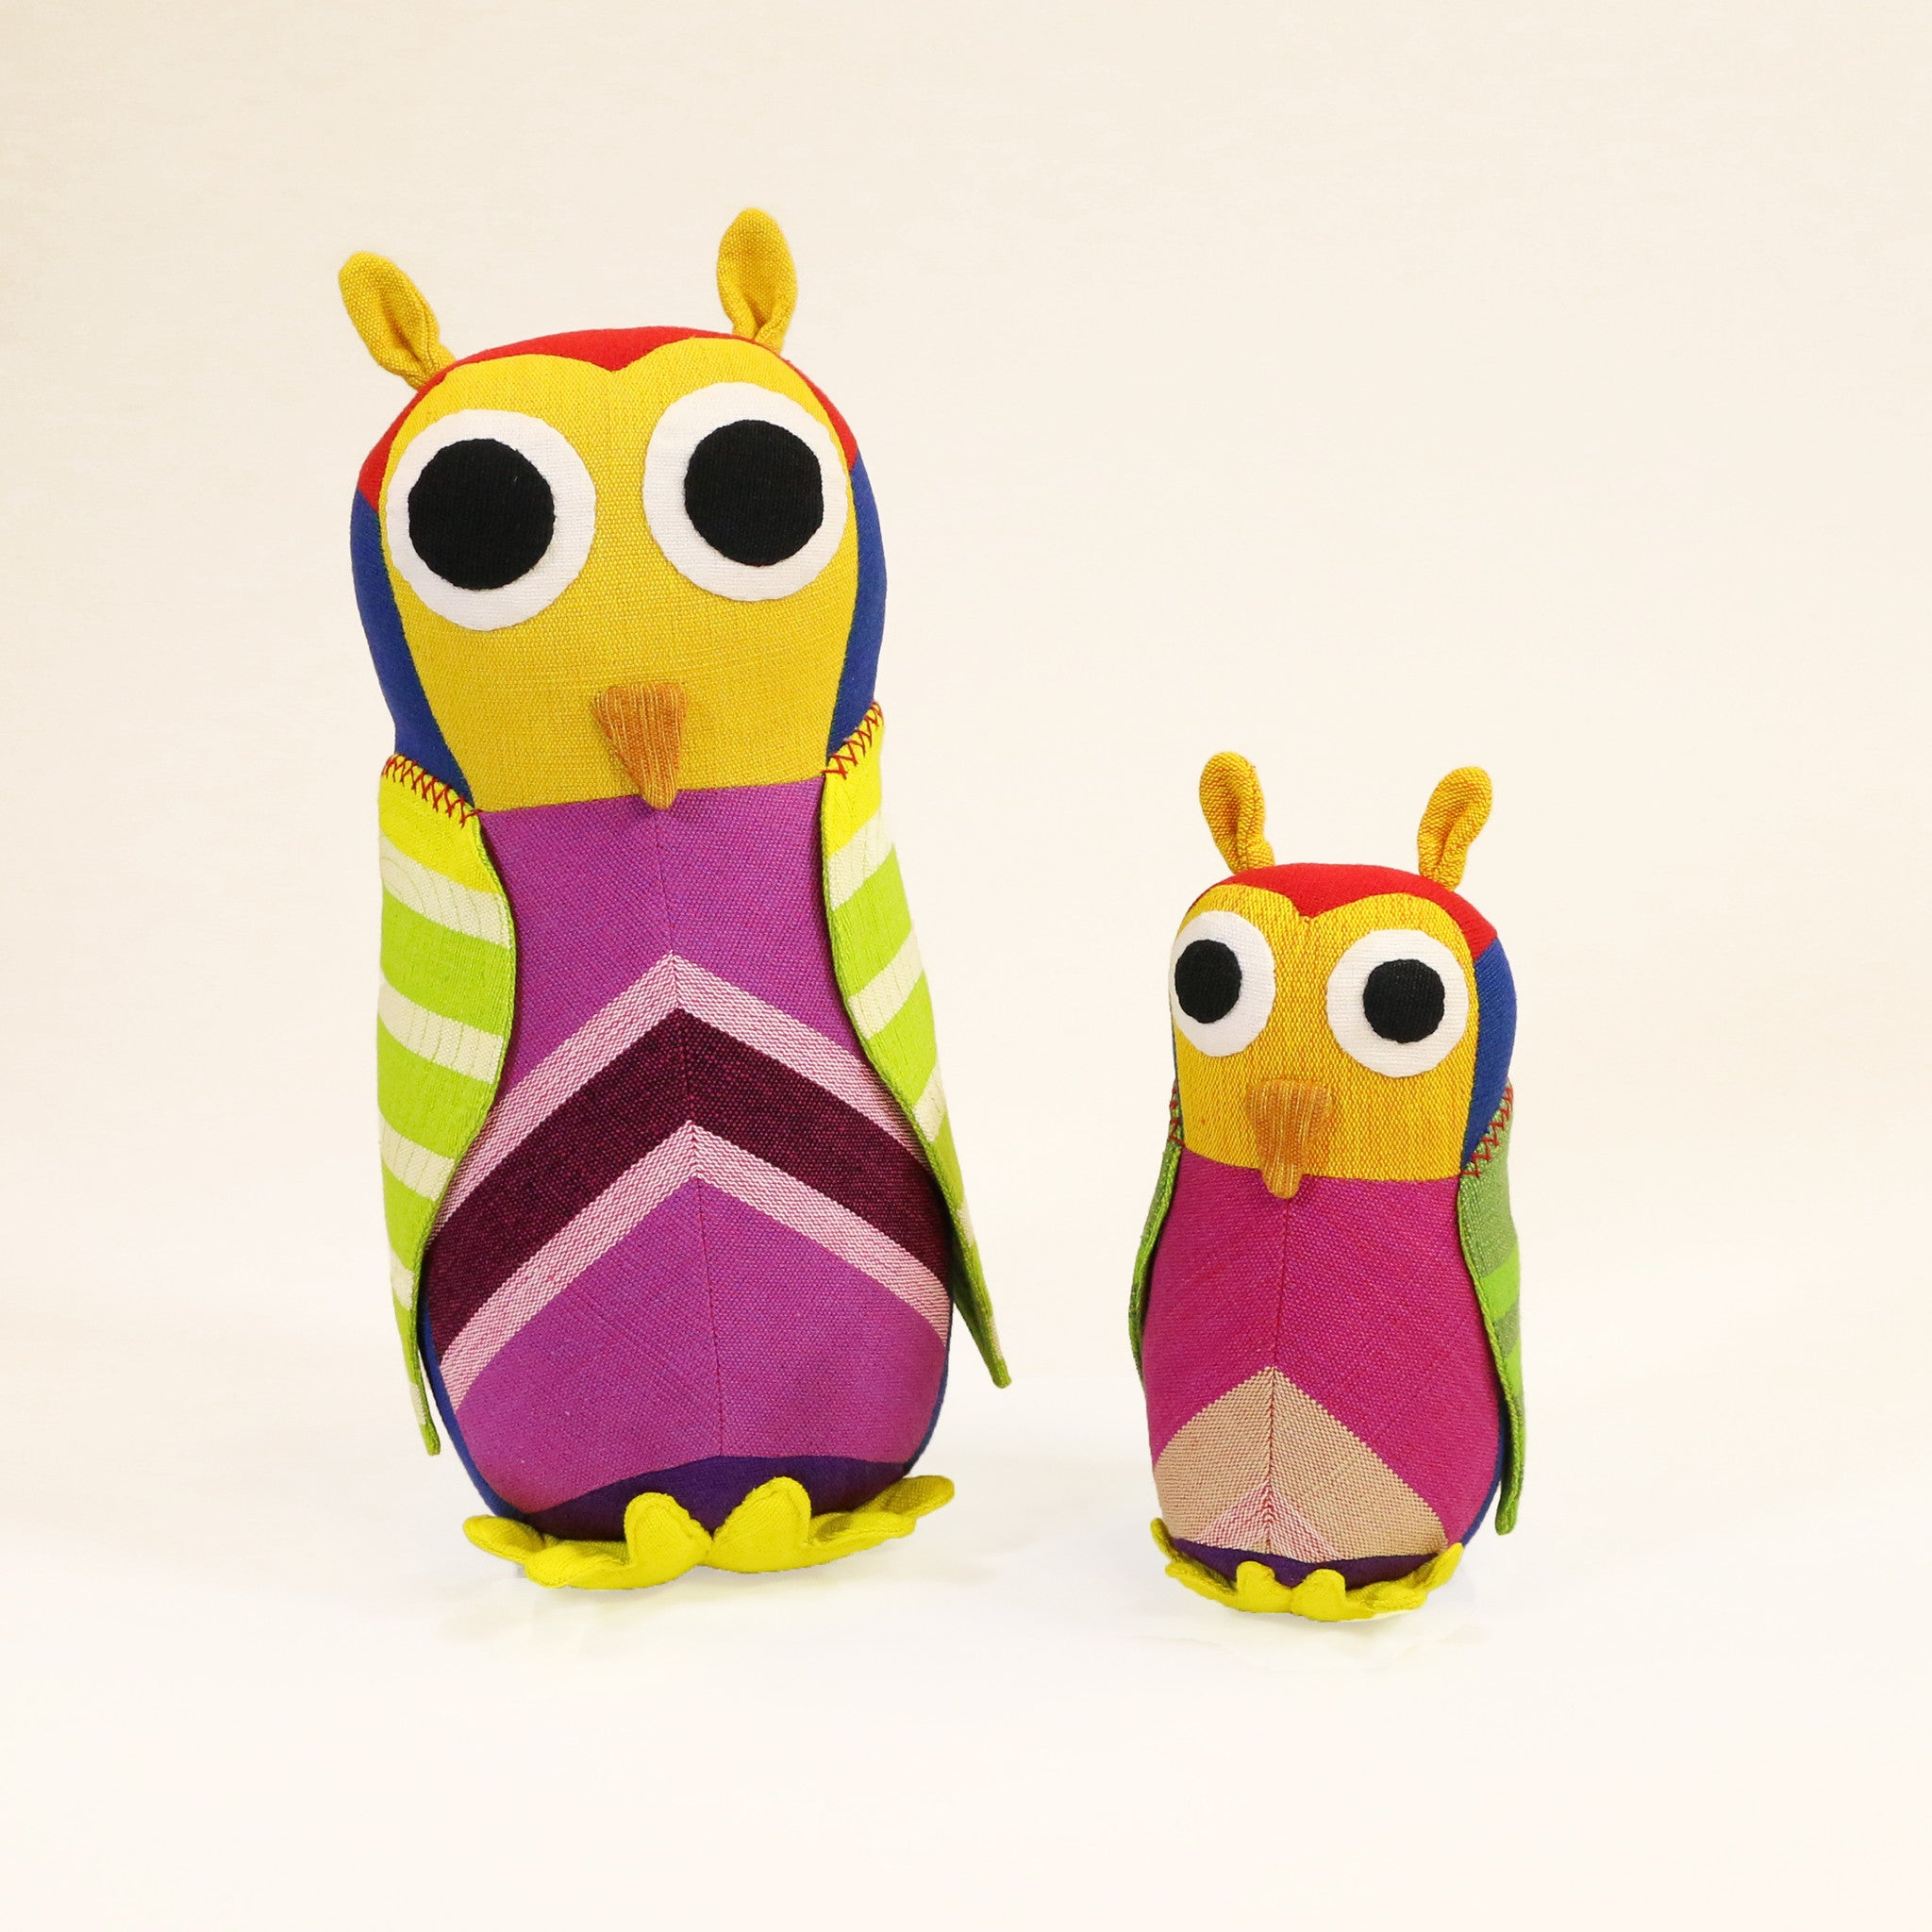 Hazel, the Owl (small & large sizes)